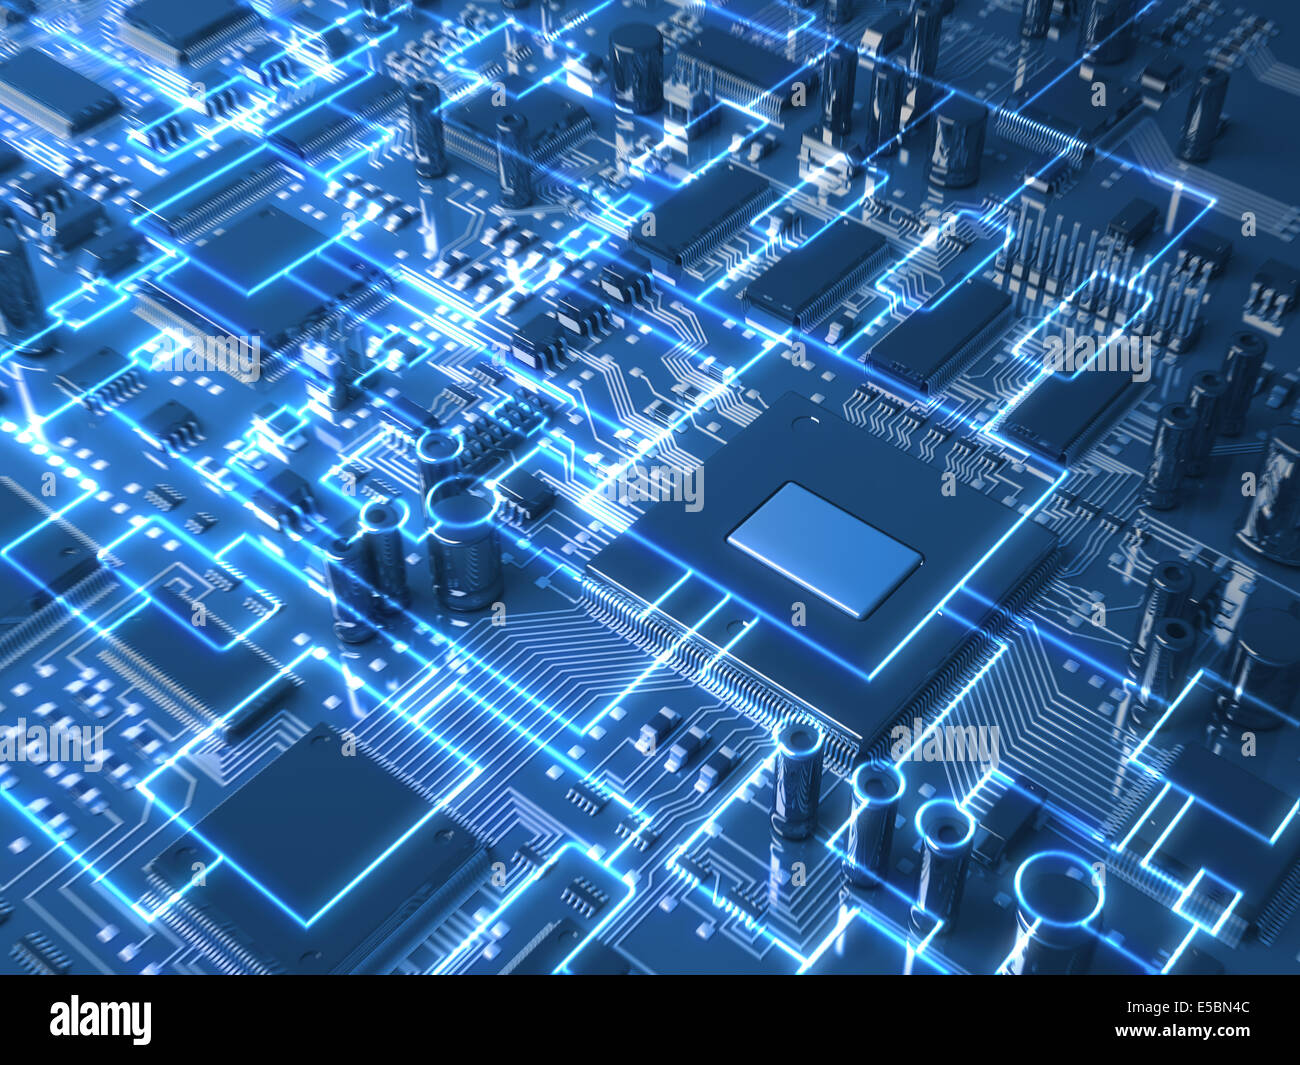 Clipart Fridge 1 furthermore 0511 1009 0114 5870 in addition Stock Photo Fantasy  puter Circuit Board Or Motherboard Or Mainboard Technology 72172812 moreover 21843830 also Elektriker Reitet 11238455. on animated electric repair